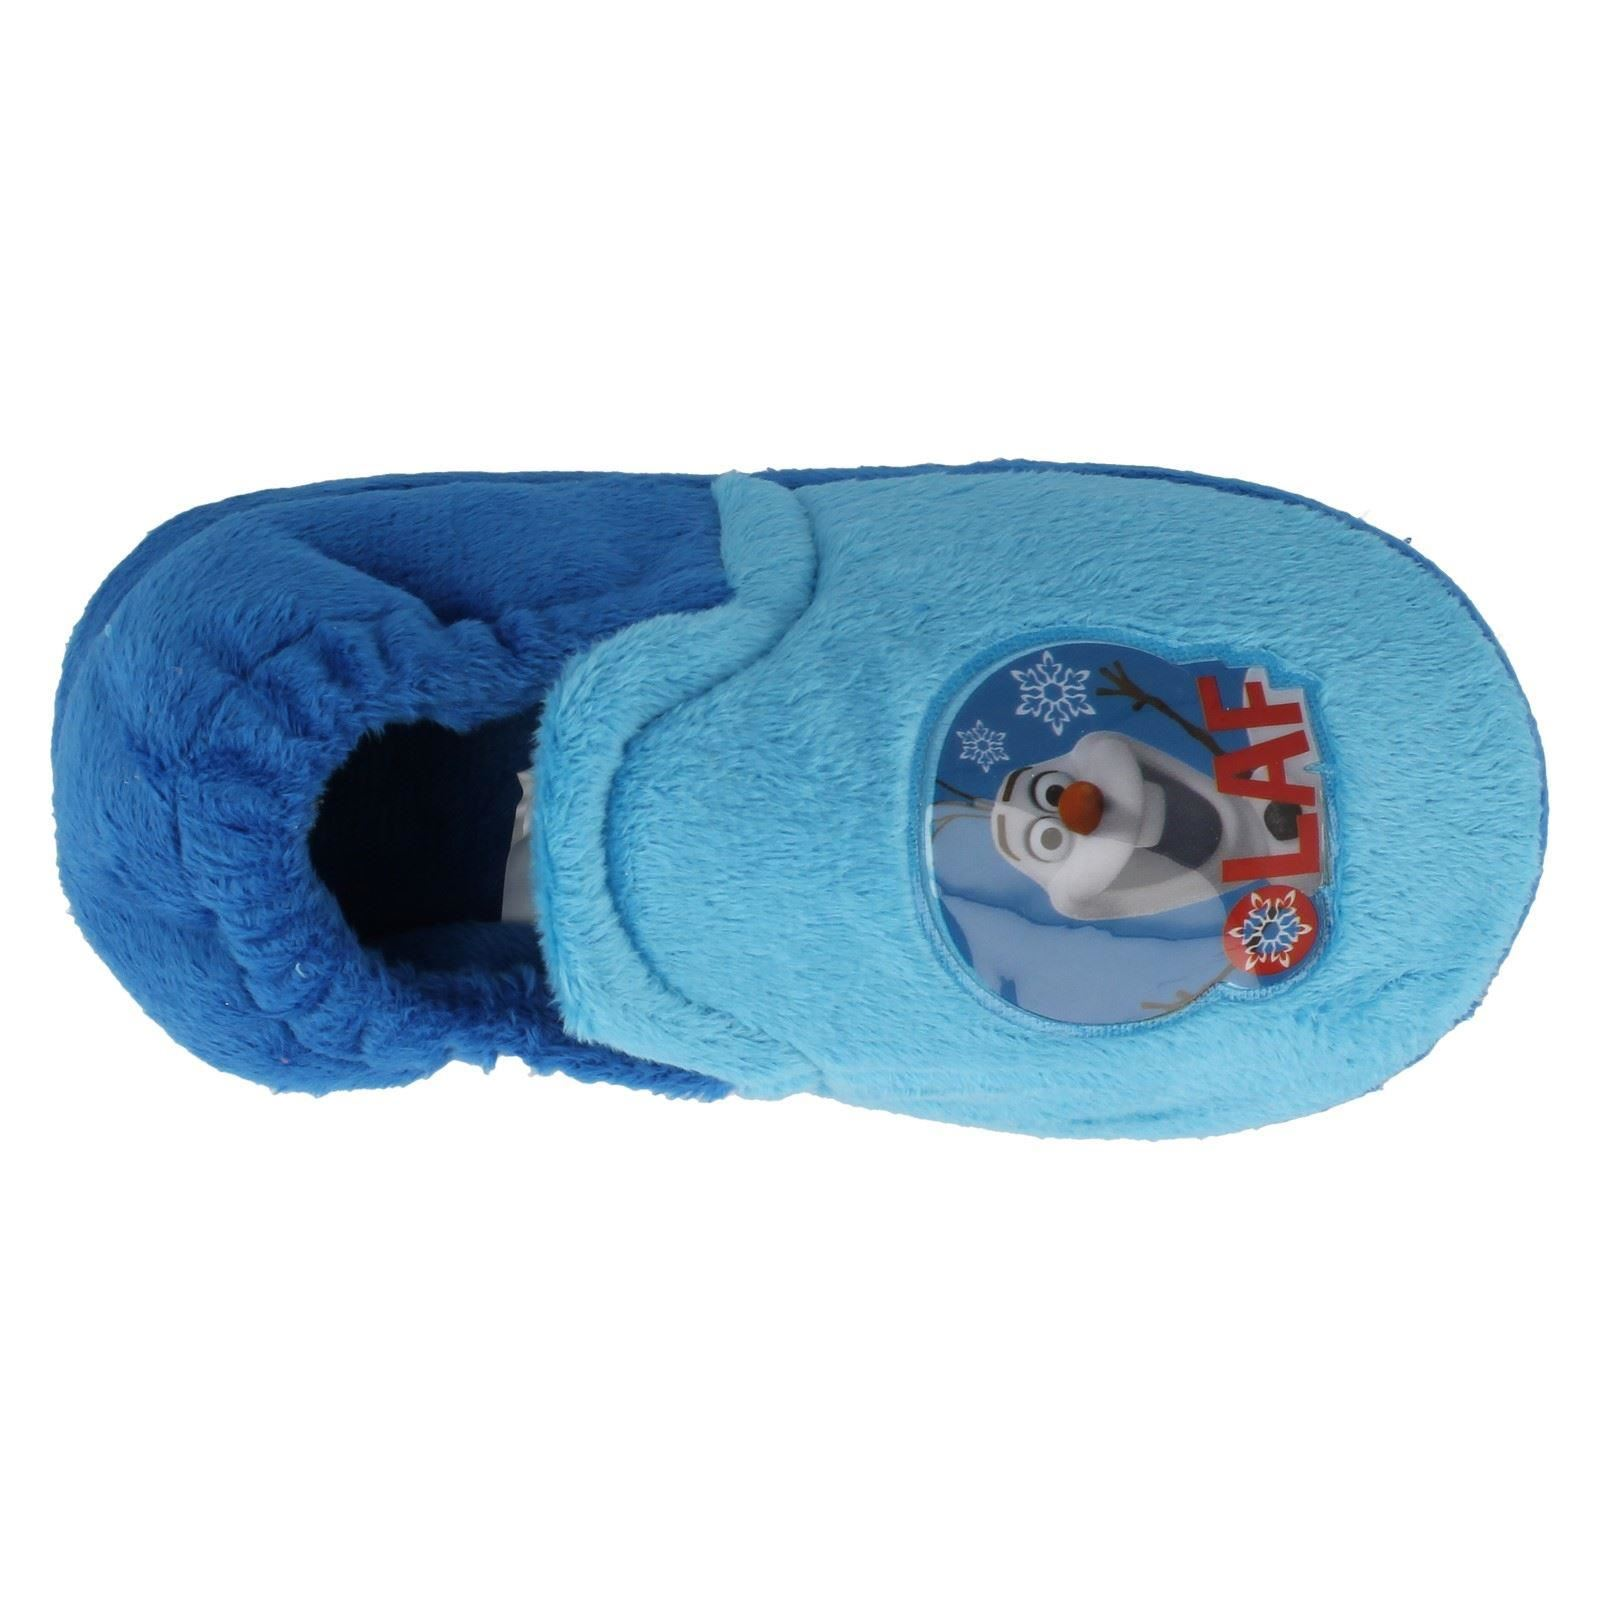 Boys Disney Frozen Slippers - WD8886